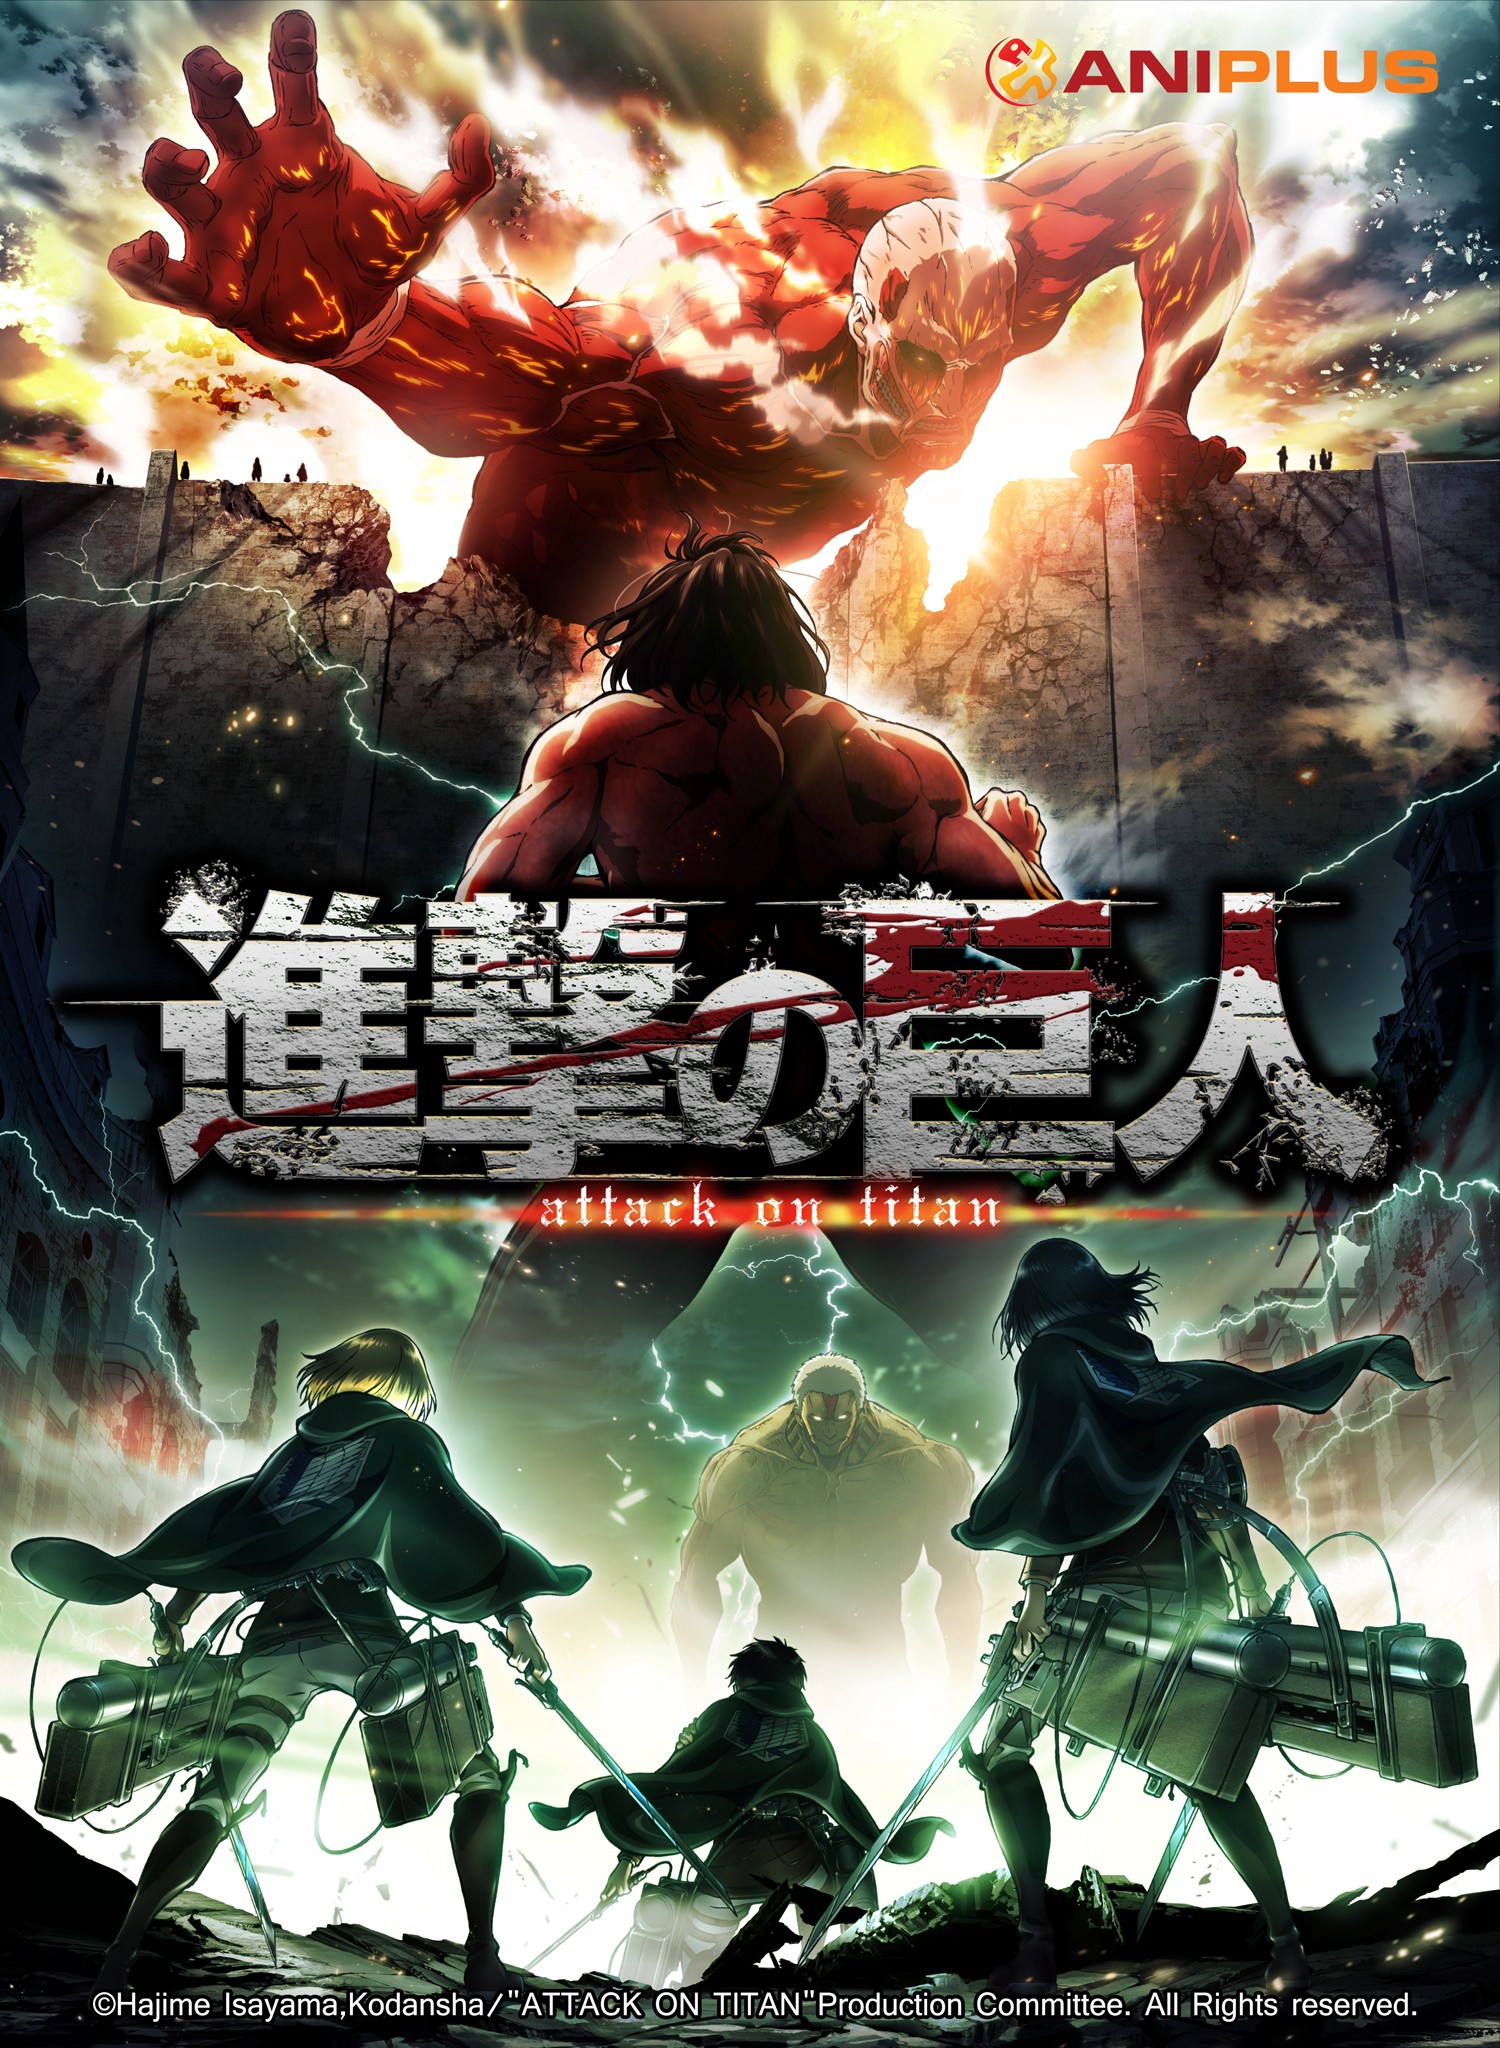 Attack on Titan 2 on Aniplus this April 2017